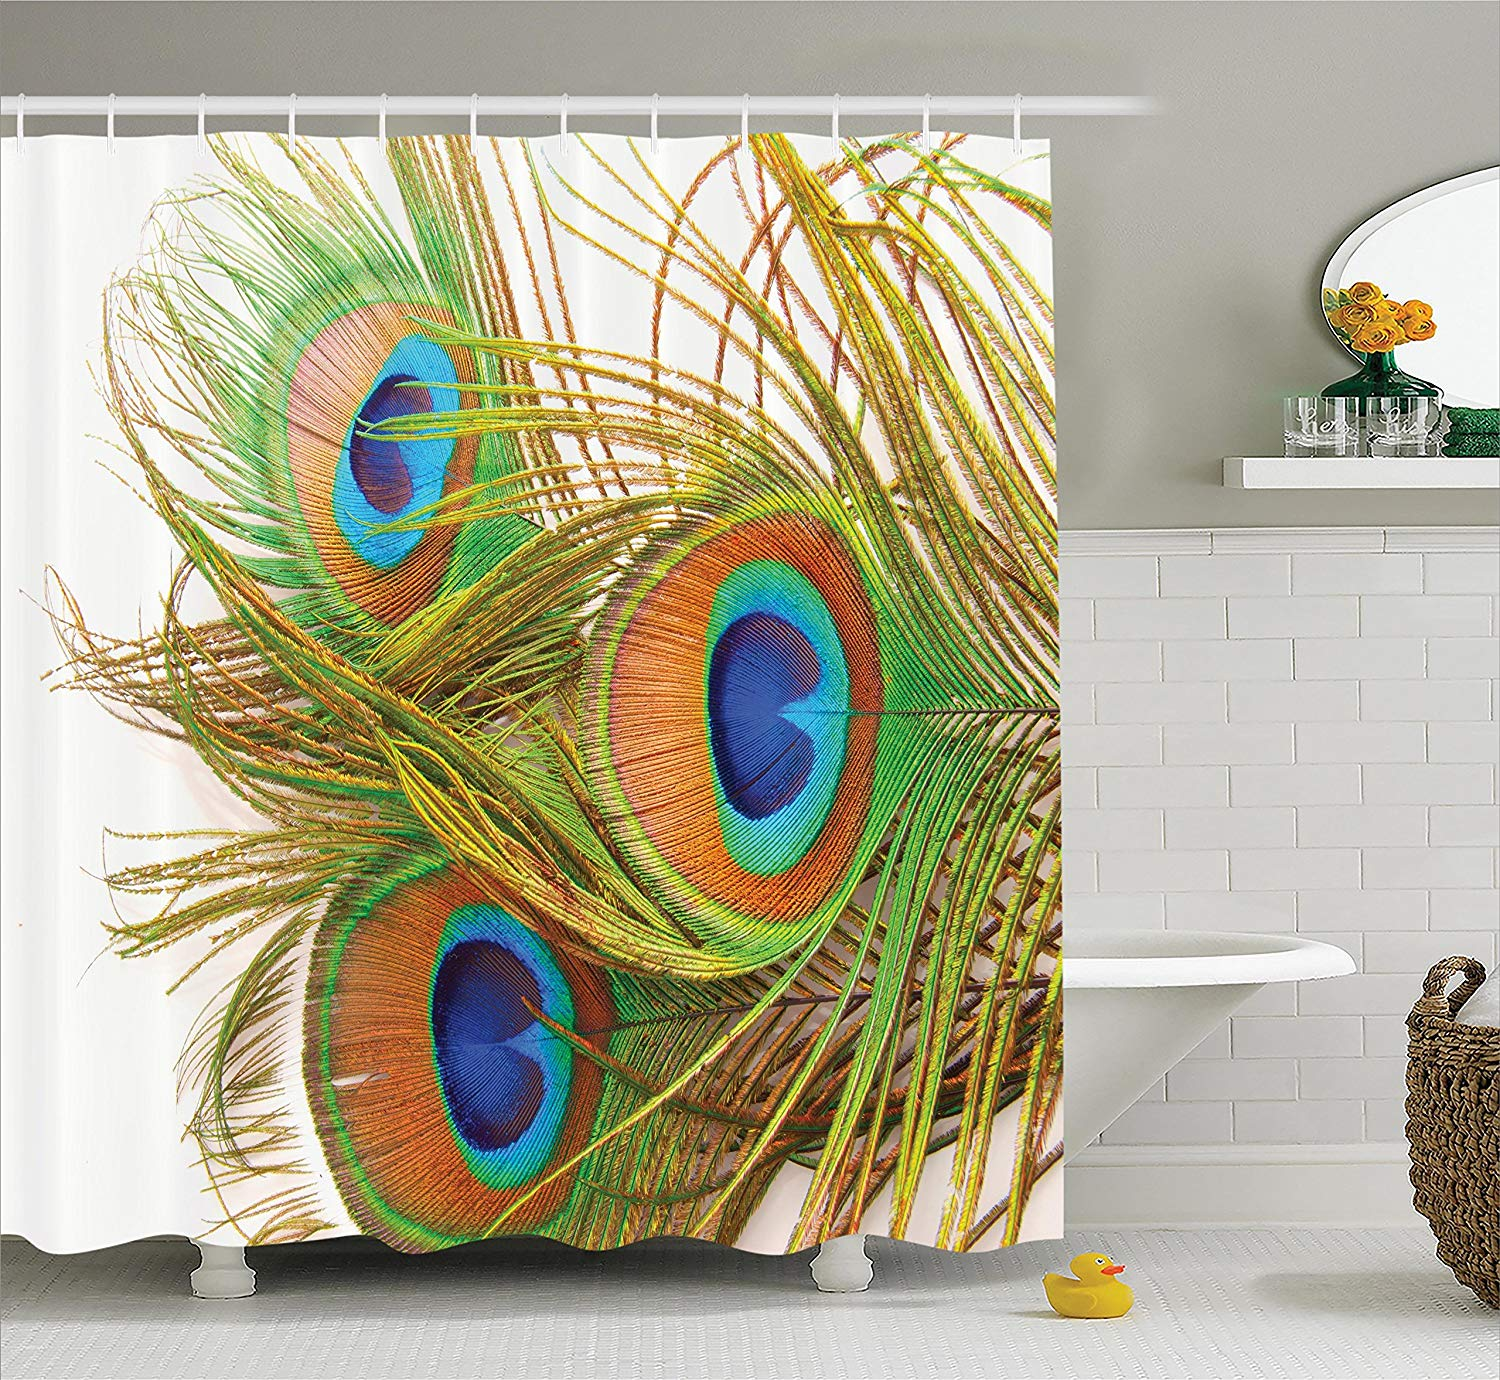 Peacock Decor Shower Curtain Peacock Feathers Modern ...